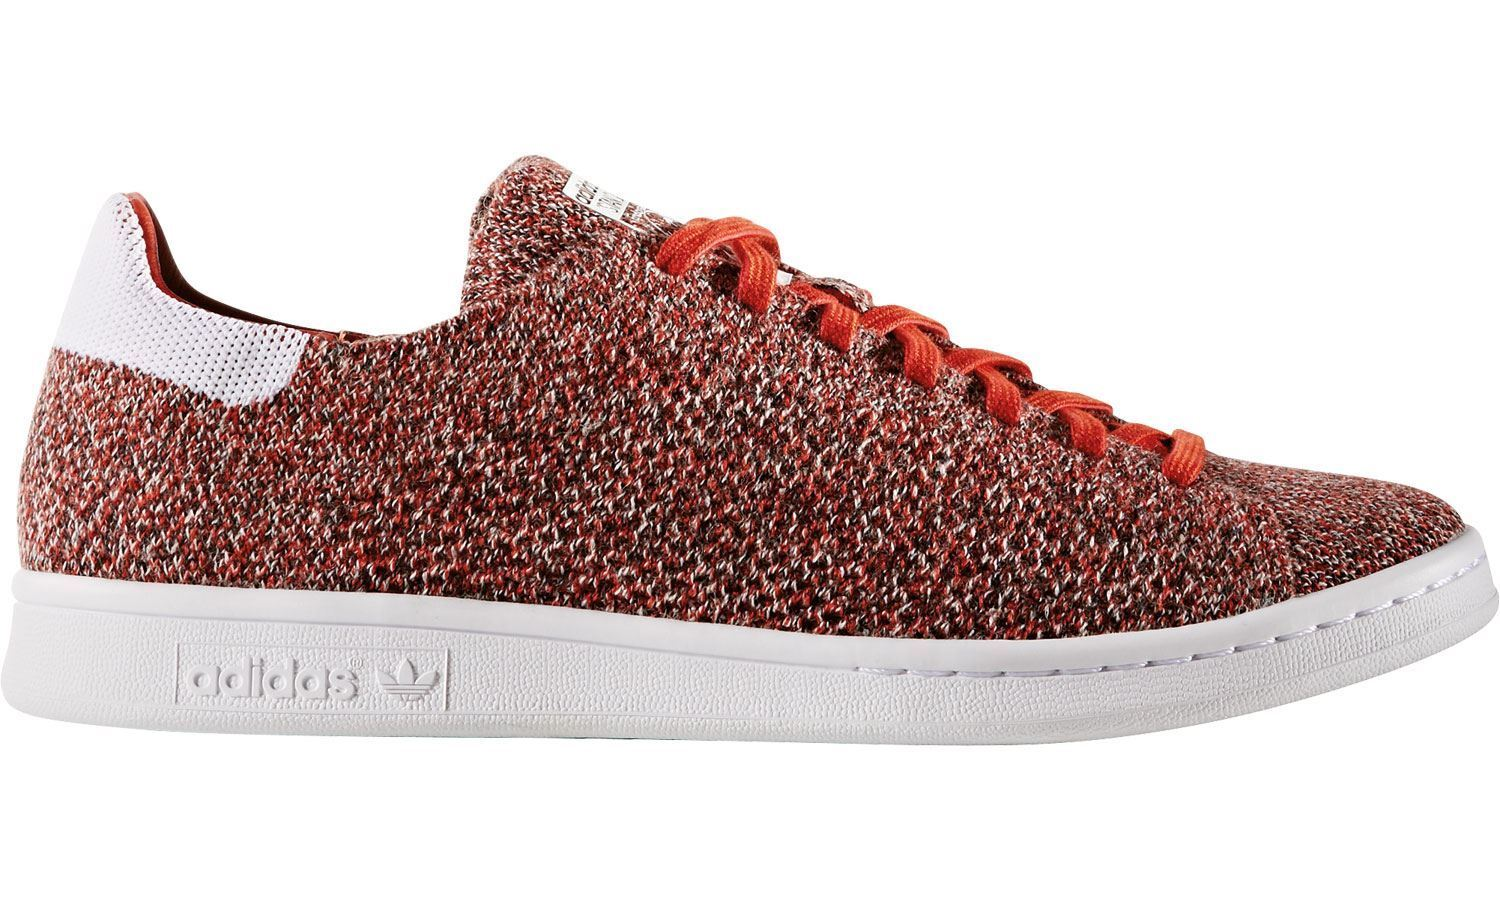 SALE Adidas - STAN SMITH PK Men's Trainer Red (S80068)